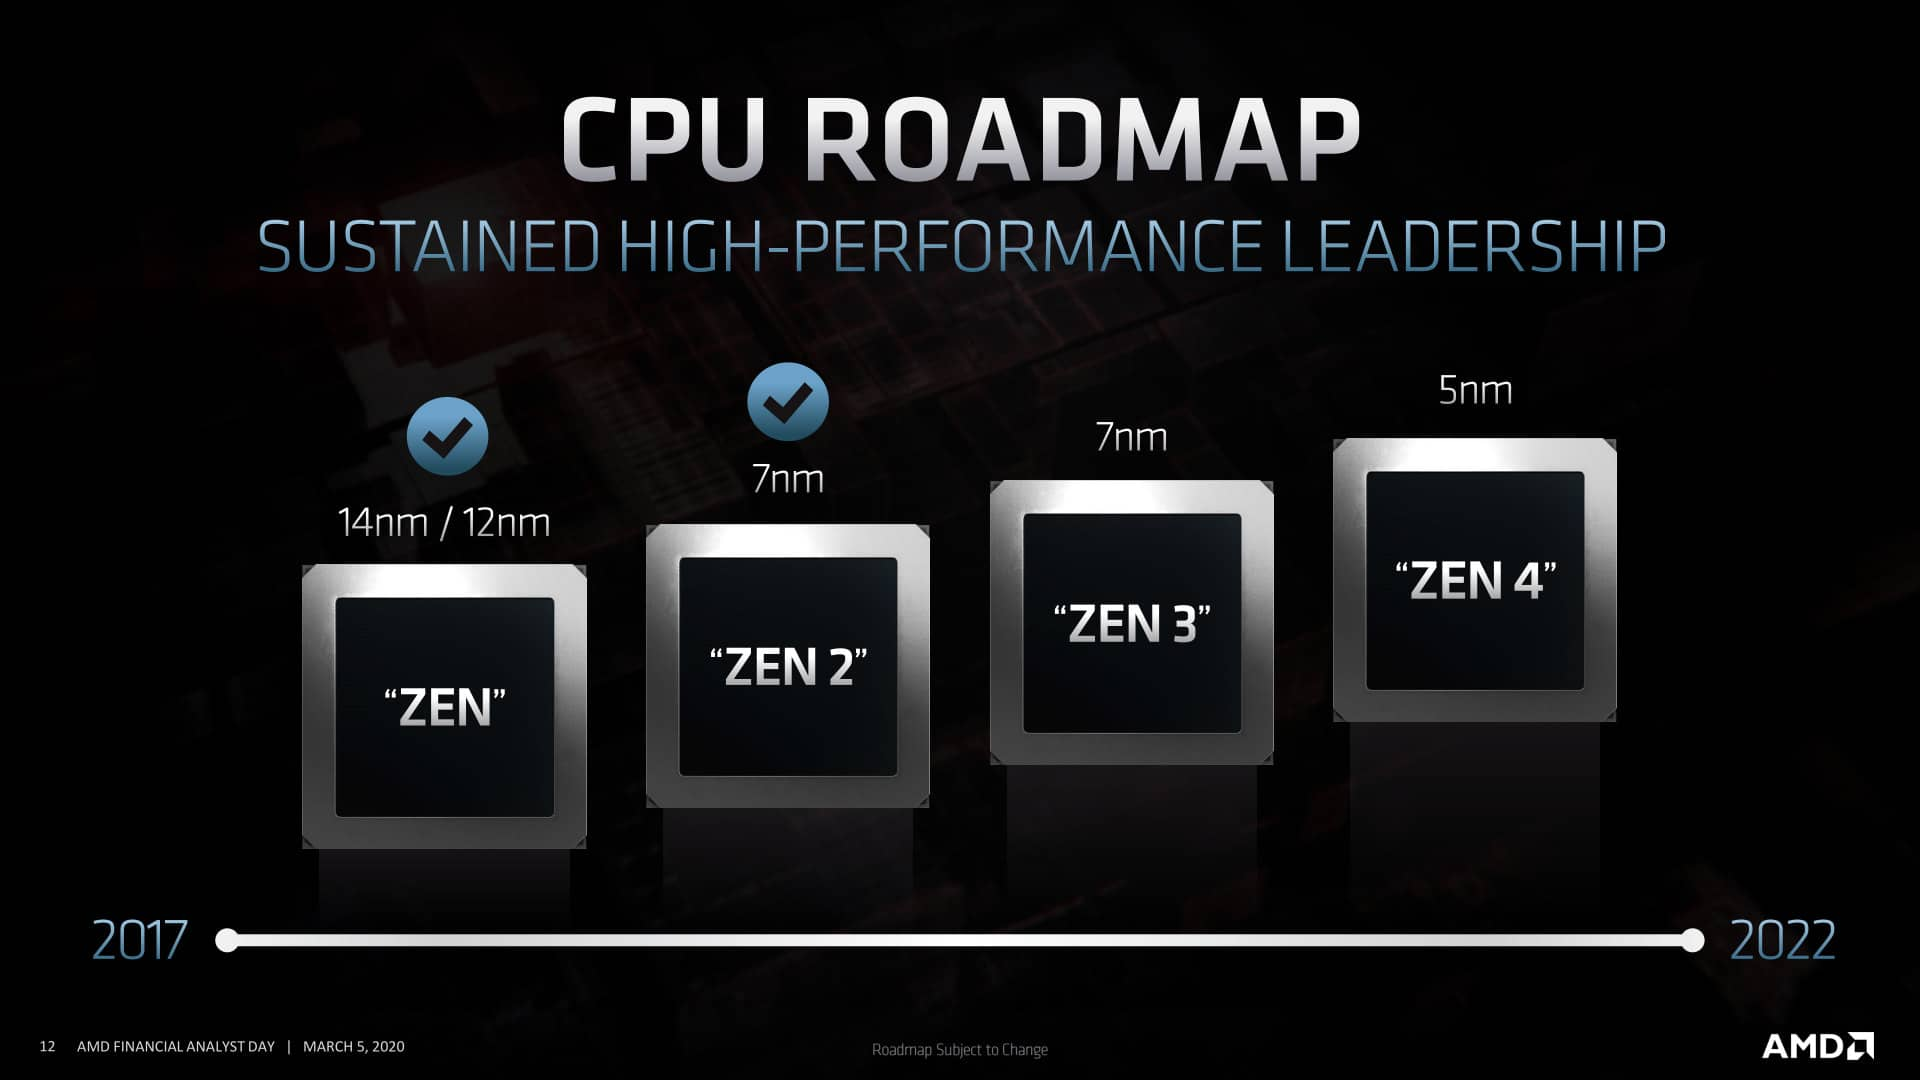 AMD roadmapa CPU 00 architektura Zen 4